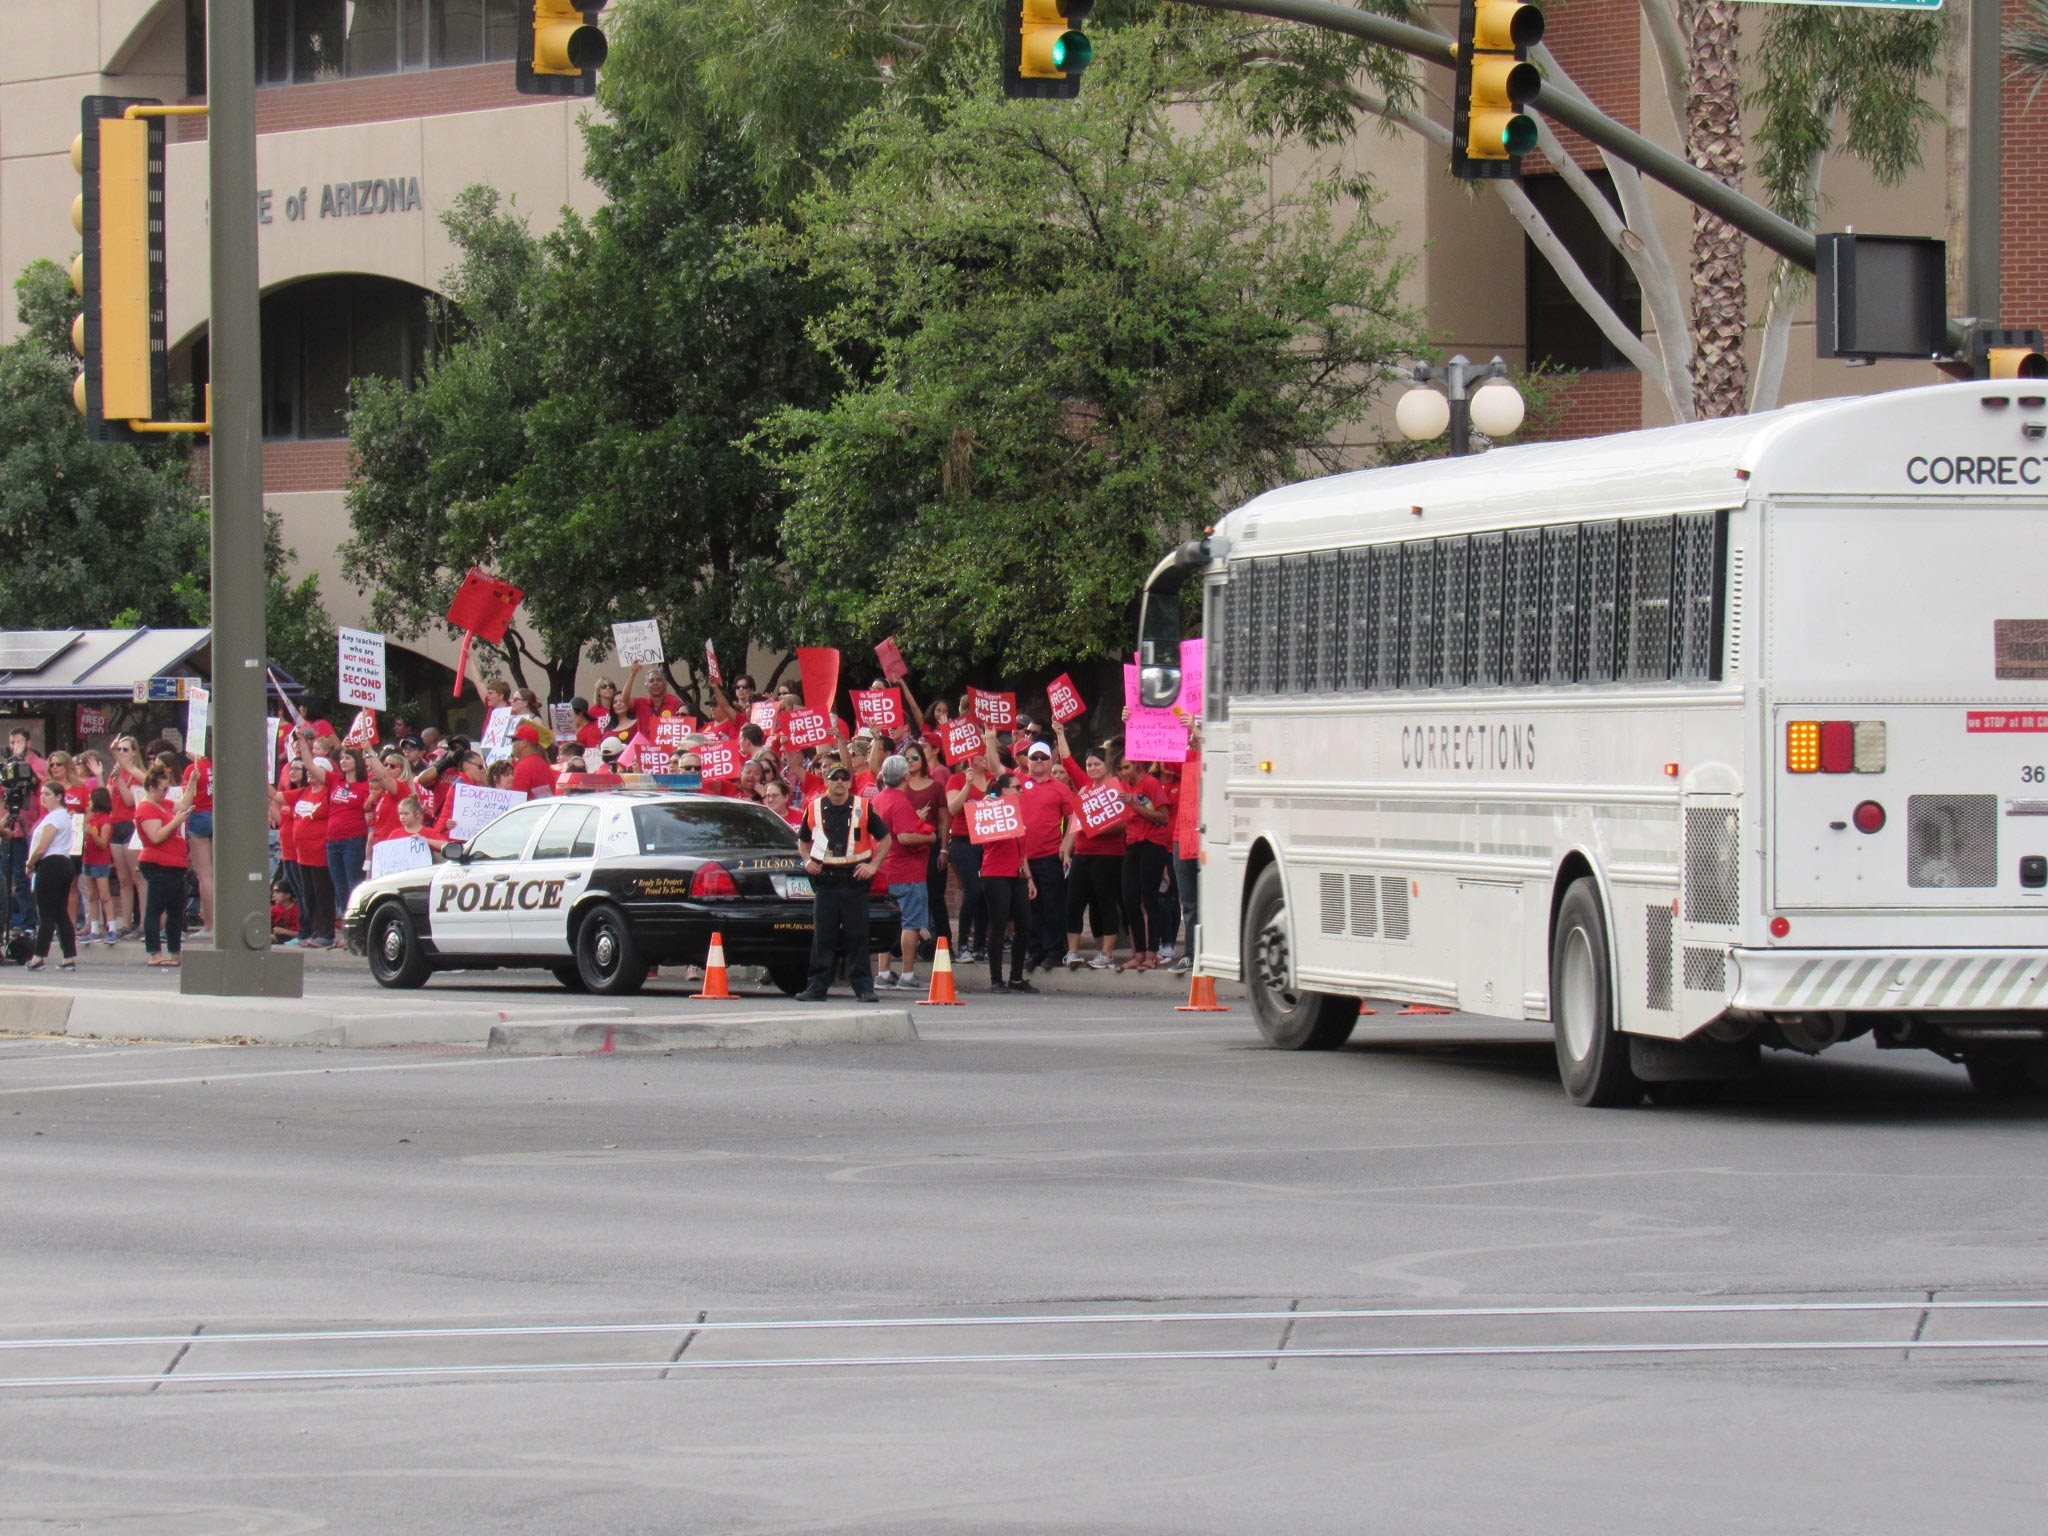 Corrections bus drives past rally